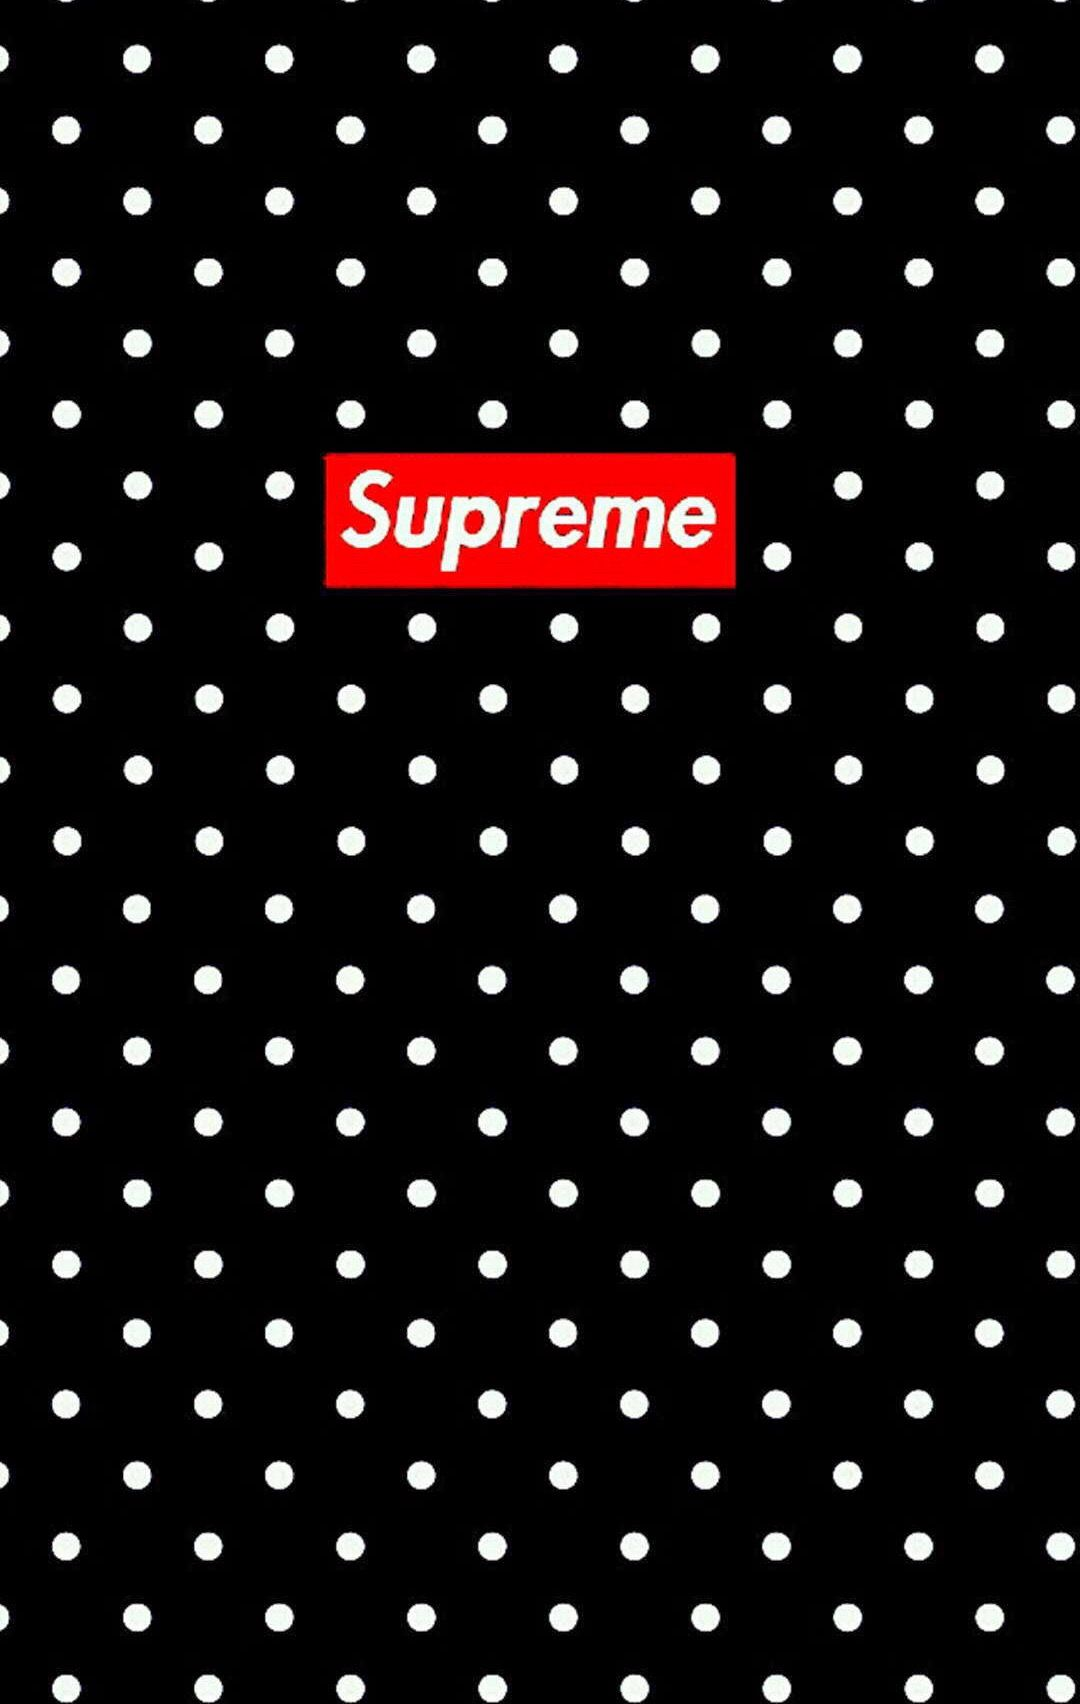 Pin by Drippy Penz on Supreme Wallpapers Supreme